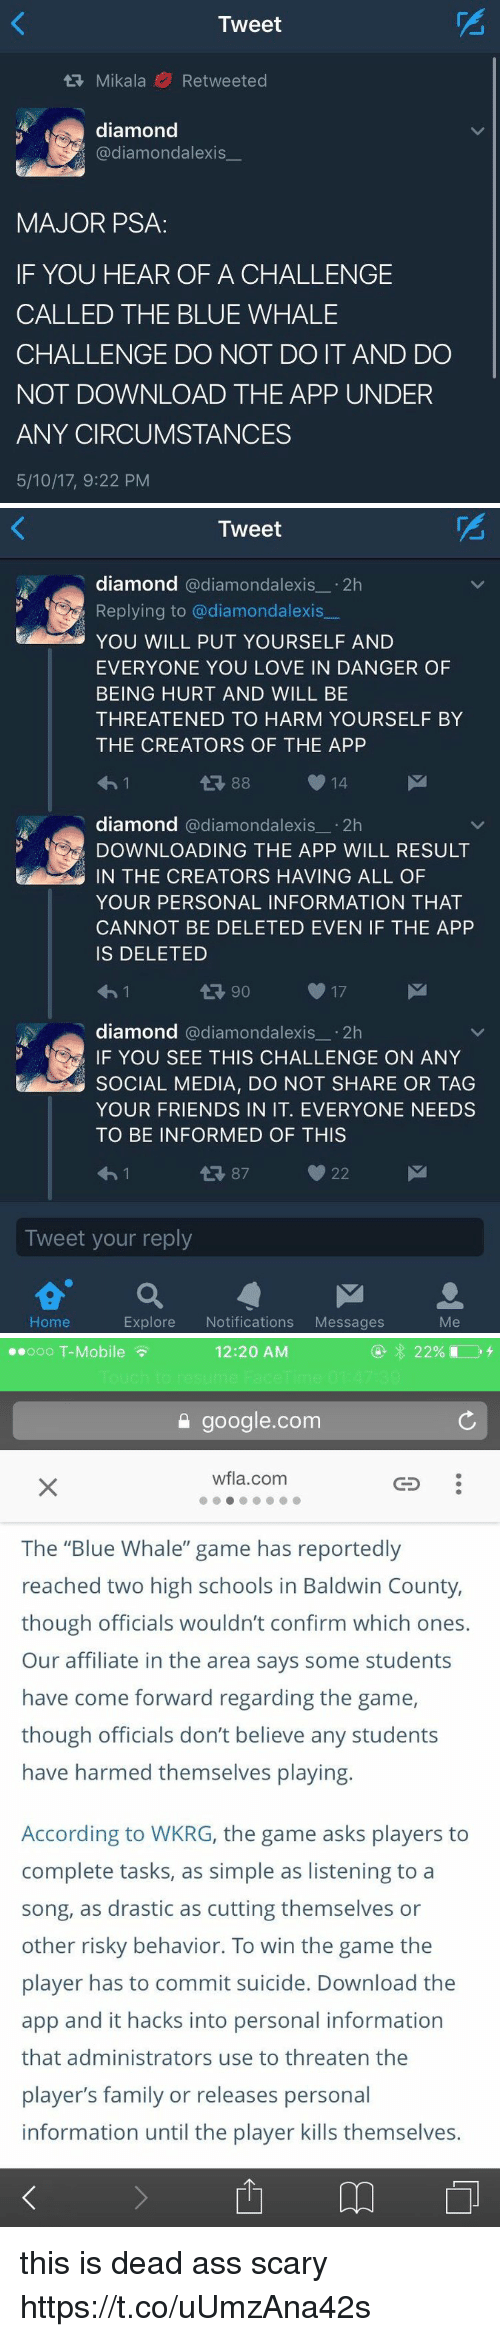 "Ass, Family, and Friends: Tweet  tR, Mikala Re tweeted  diamond  @diamond alexis  MAJOR PSA  IF YOU HEAR OF A CHALLENGE  CALLED THE BLUE WHALE  CHALLENGE DO NOT DO IT AND DO  NOT DOWNLOAD THE APP UNDER  ANY CIRCUMSTANCES  5/10/17, 9:22 PM   Tweet  diamond  @diamondalexis  2h  Replying to adiamondalexis  YOU WILL PUT YOURSELF AND  EVERYONE YOU LOVE IN DANGER OF  BEING HURT AND WILL BE  THREATENED TO HARM YOURSELF BY  THE CREATORS OF THE APP  14  diamond  @diamond alexis  2h  DOWNLOADING THE APP WILL RESULT  kan IN THE CREATORS HAVING ALL OF  YOUR PERSONAL INFORMATION THAT  CANNOT BE DELETED EVEN IF THE APP  IS DELETED  17  t 90  diamond  a diamondalexis 2h  F YOU SEE THIS CHALLENGE ON ANY  SOCIAL MEDIA, DO NOT SHARE OR TAG  YOUR FRIENDS IN IT. EVERYONE NEEDS  TO BE INFORMED OF THIS  22  87  Tweet your reply  a M  Home  Explore  Notifications  Messages  Me   12:20 AM  ooo T-Mobile  google.com  wfla.com  The ""Blue Whale"" game has reportedly  reached two high schools in Baldwin County,  though officials wouldn't confirm which ones.  Our affiliate in the area says some students  have come forward regarding the game,  though officials don't believe any students  have harmed themselves playing.  According to WKRG, the game asks players to  complete tasks, as simple as listening to a  song, as drastic as cutting themselves or  other risky behavior. To win the game the  player has to commit suicide. Download the  app and it hacks into personal information  that administrators use to threaten the  player's family or releases personal  information until the player kills themselves. this is dead ass scary https://t.co/uUmzAna42s"